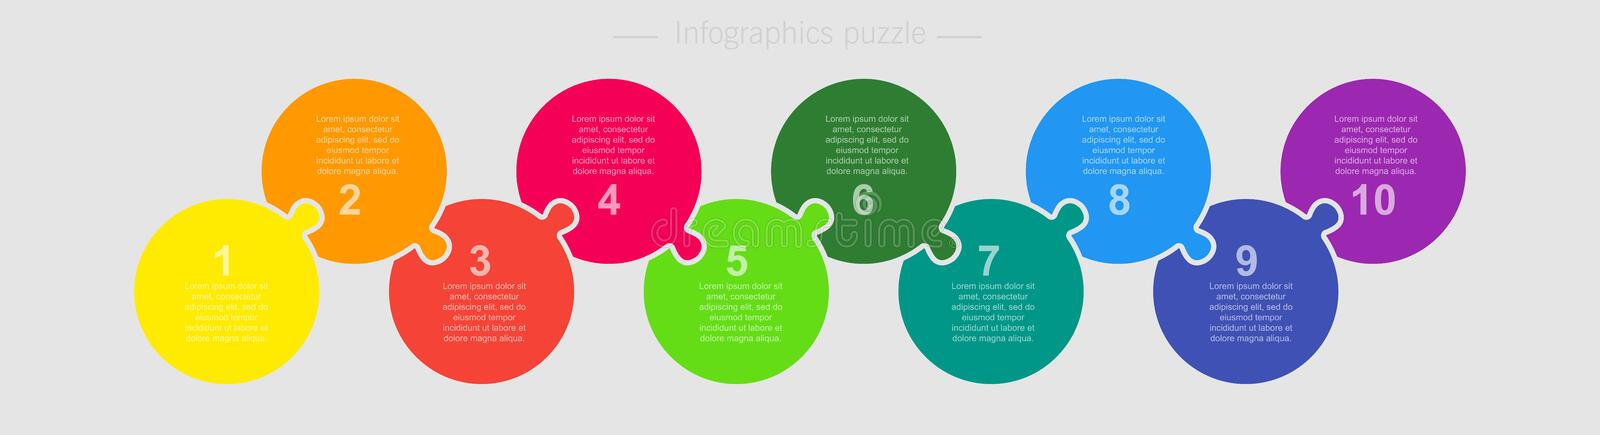 Vector jigsaw puzzle circle info graphic 10 steps royalty free illustration